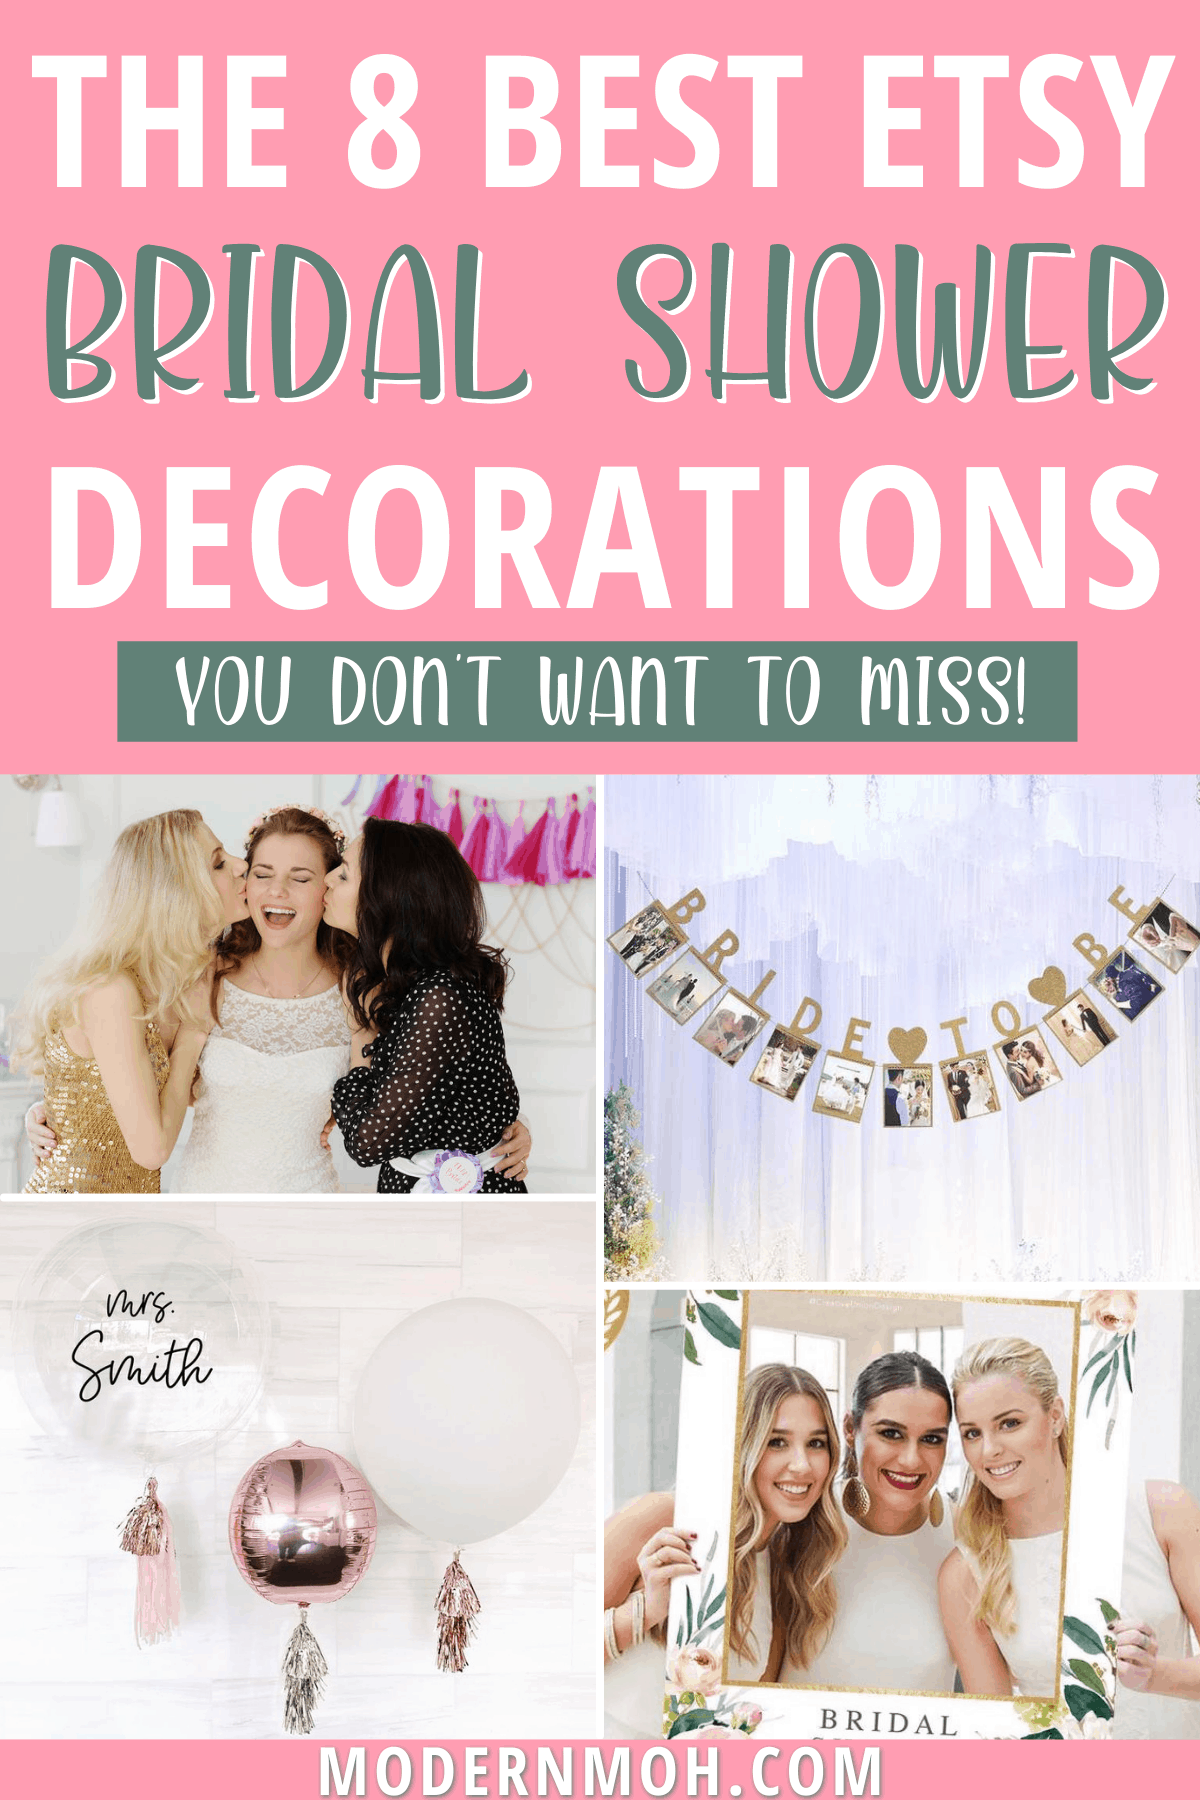 8 Etsy bridal shower decorations you won't want to miss